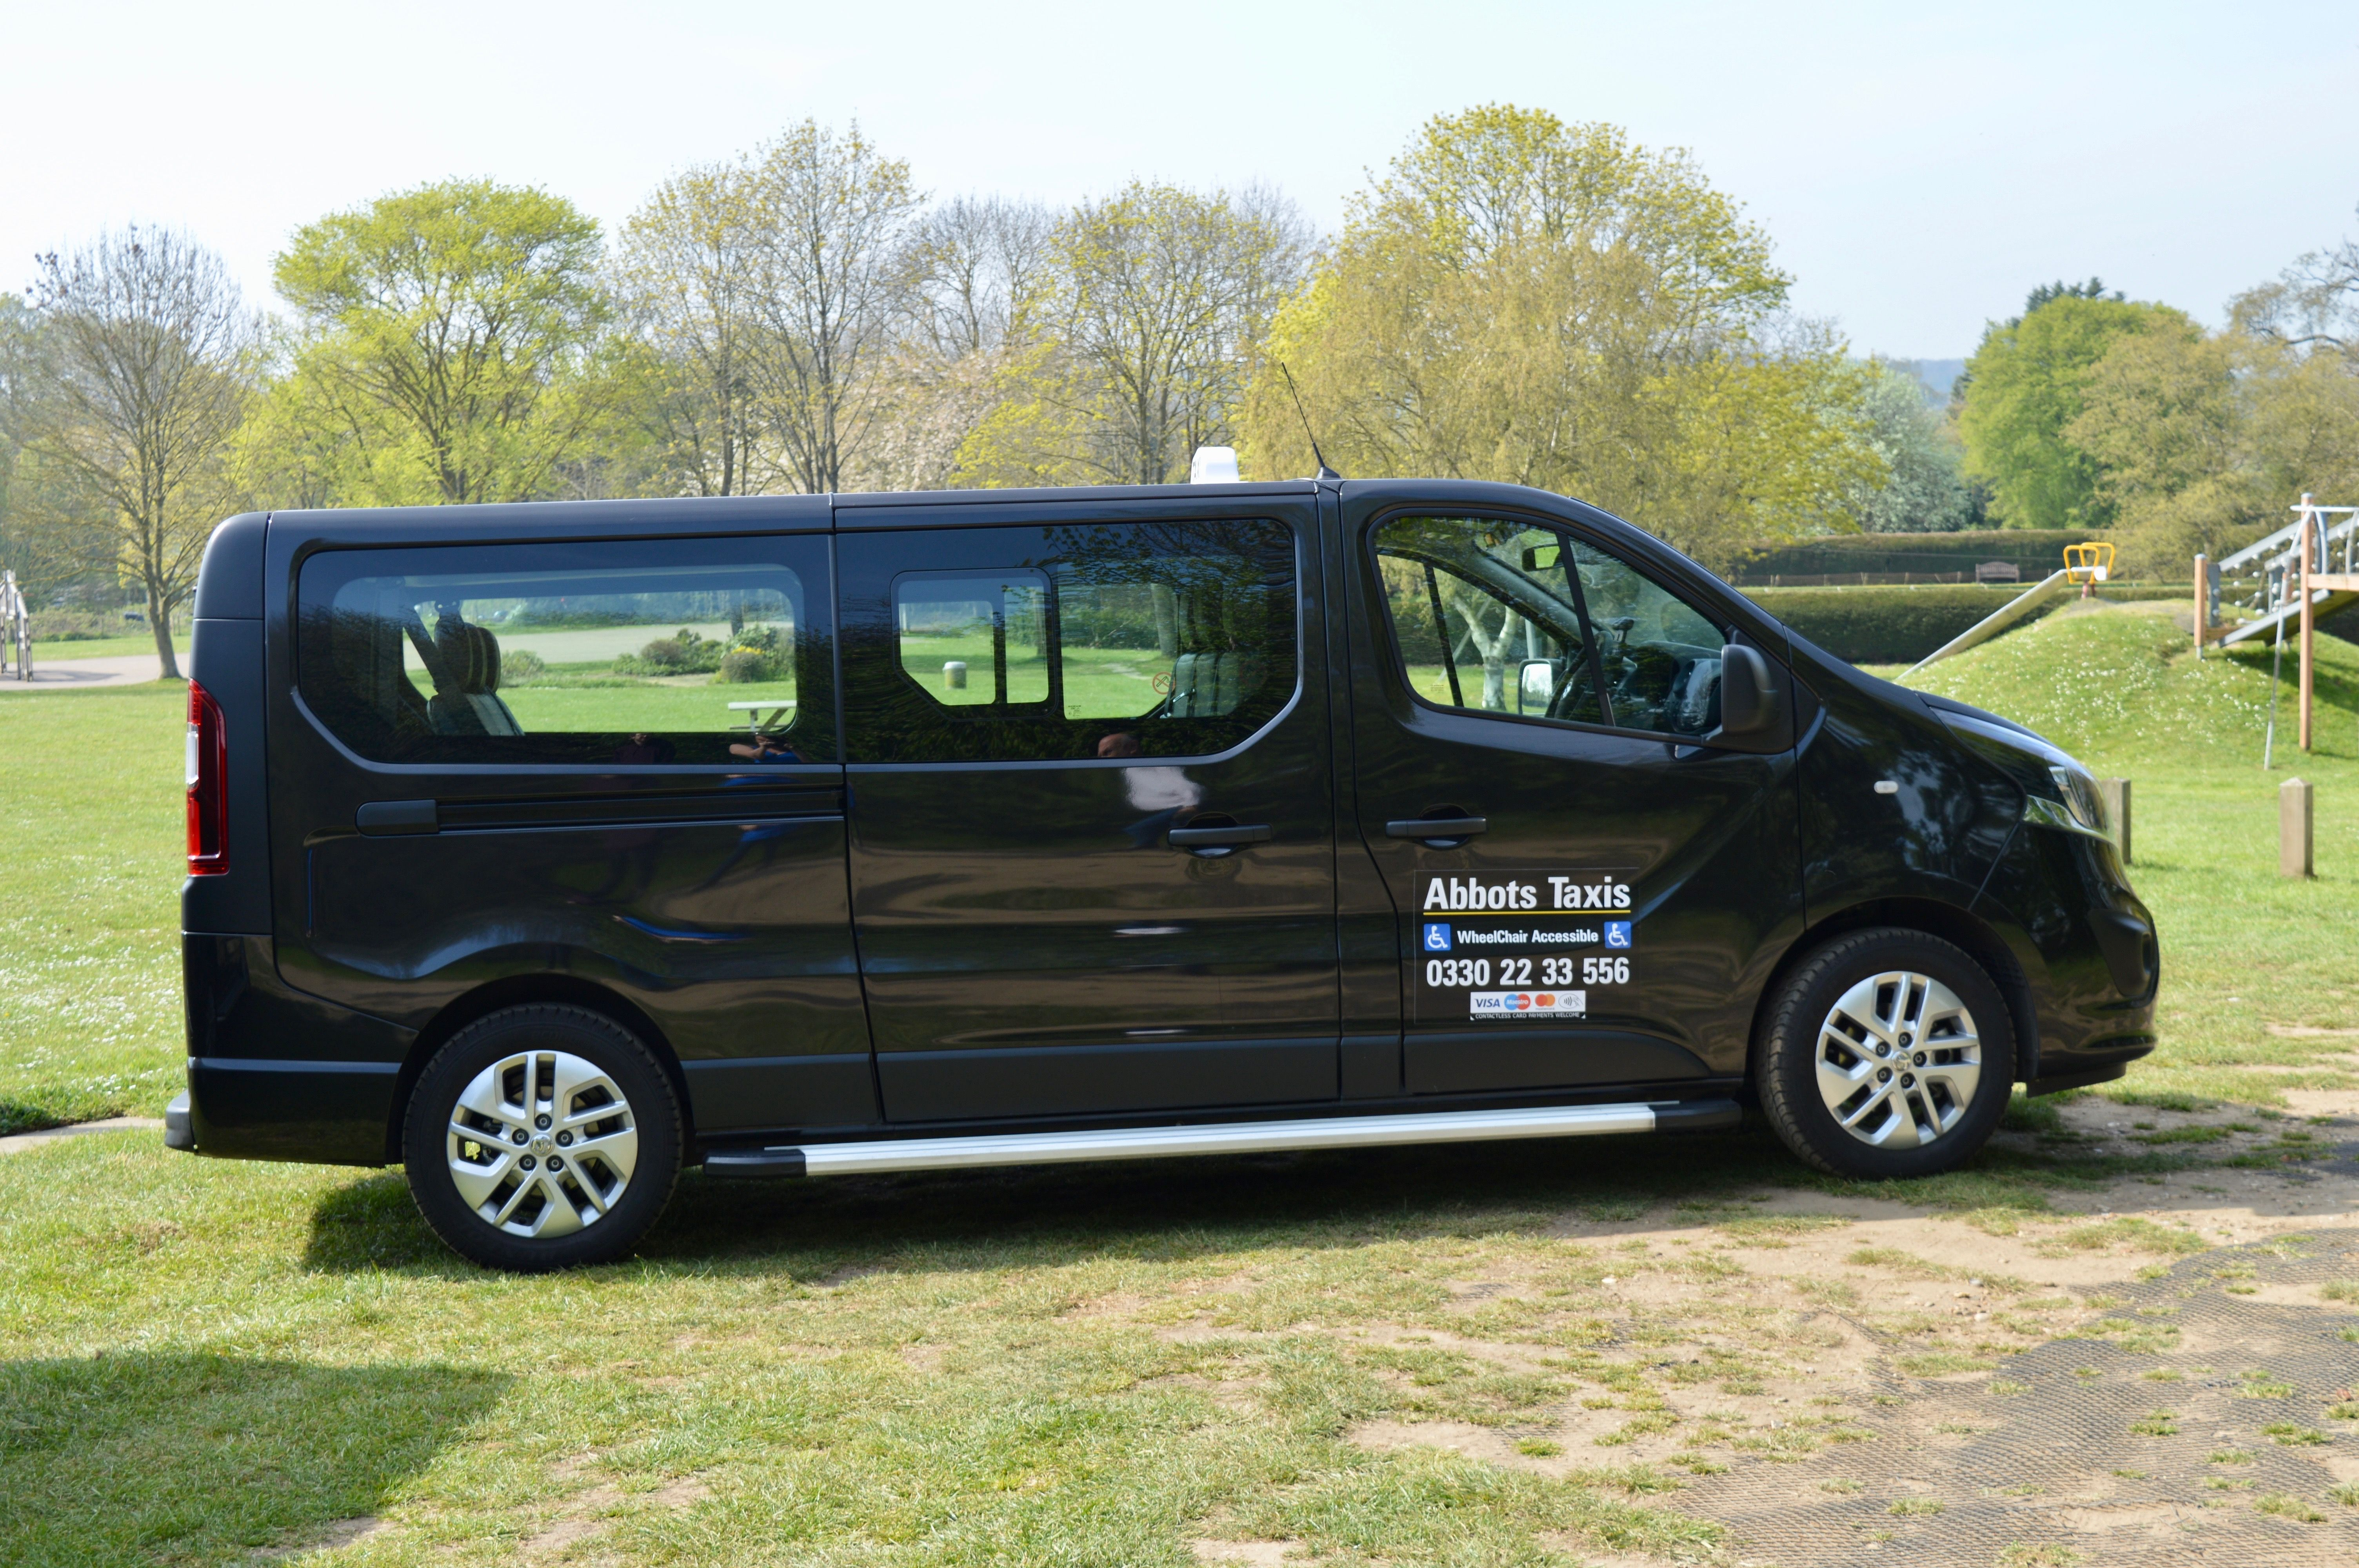 Outside view of the Vauxhall Vivaro 8 seater vehicle